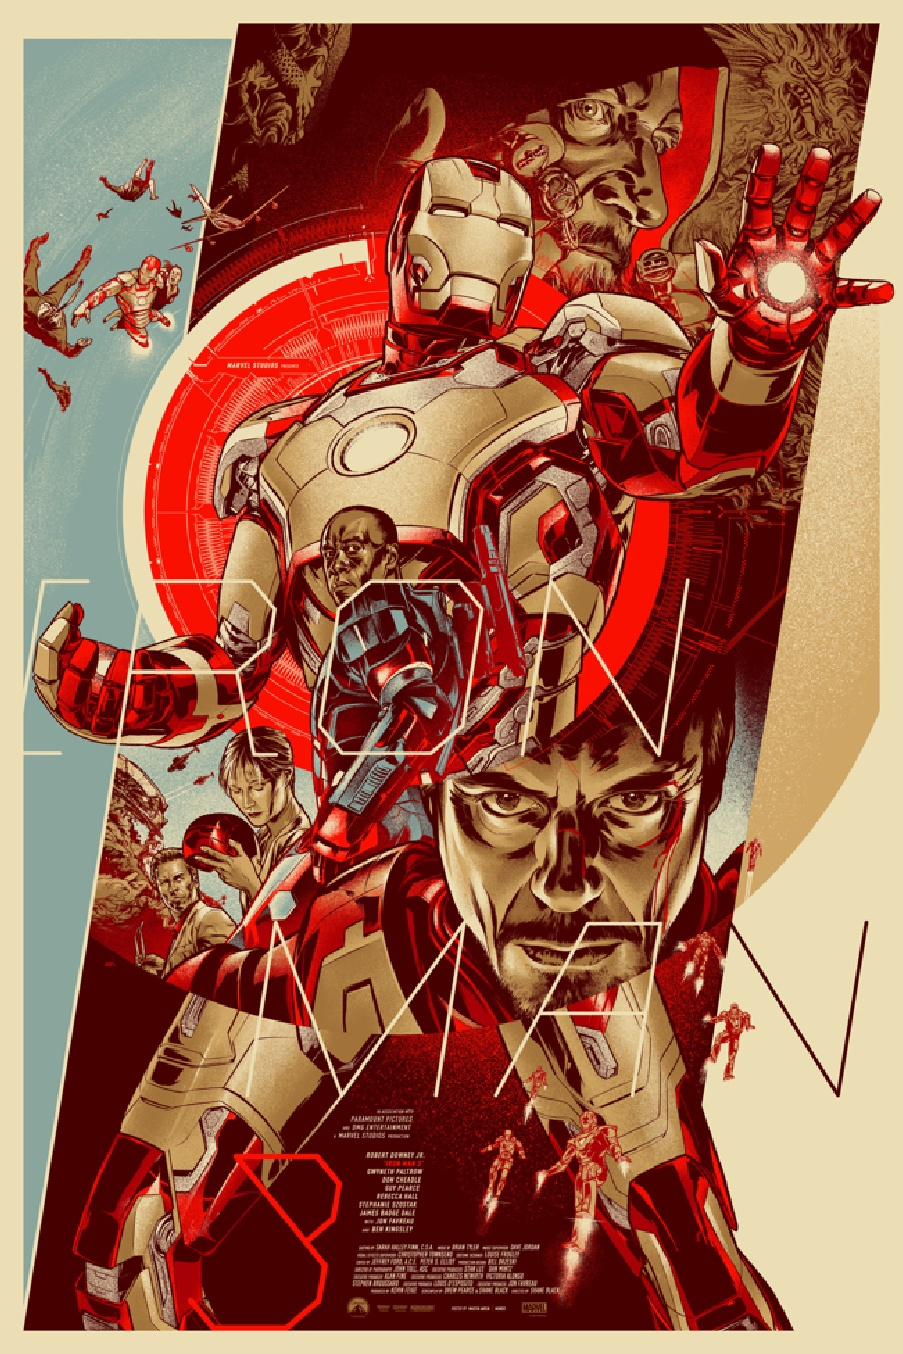 Cool iron man 3 wrap poster and 2 mondo posters geektyrant for Cool paintings for sale